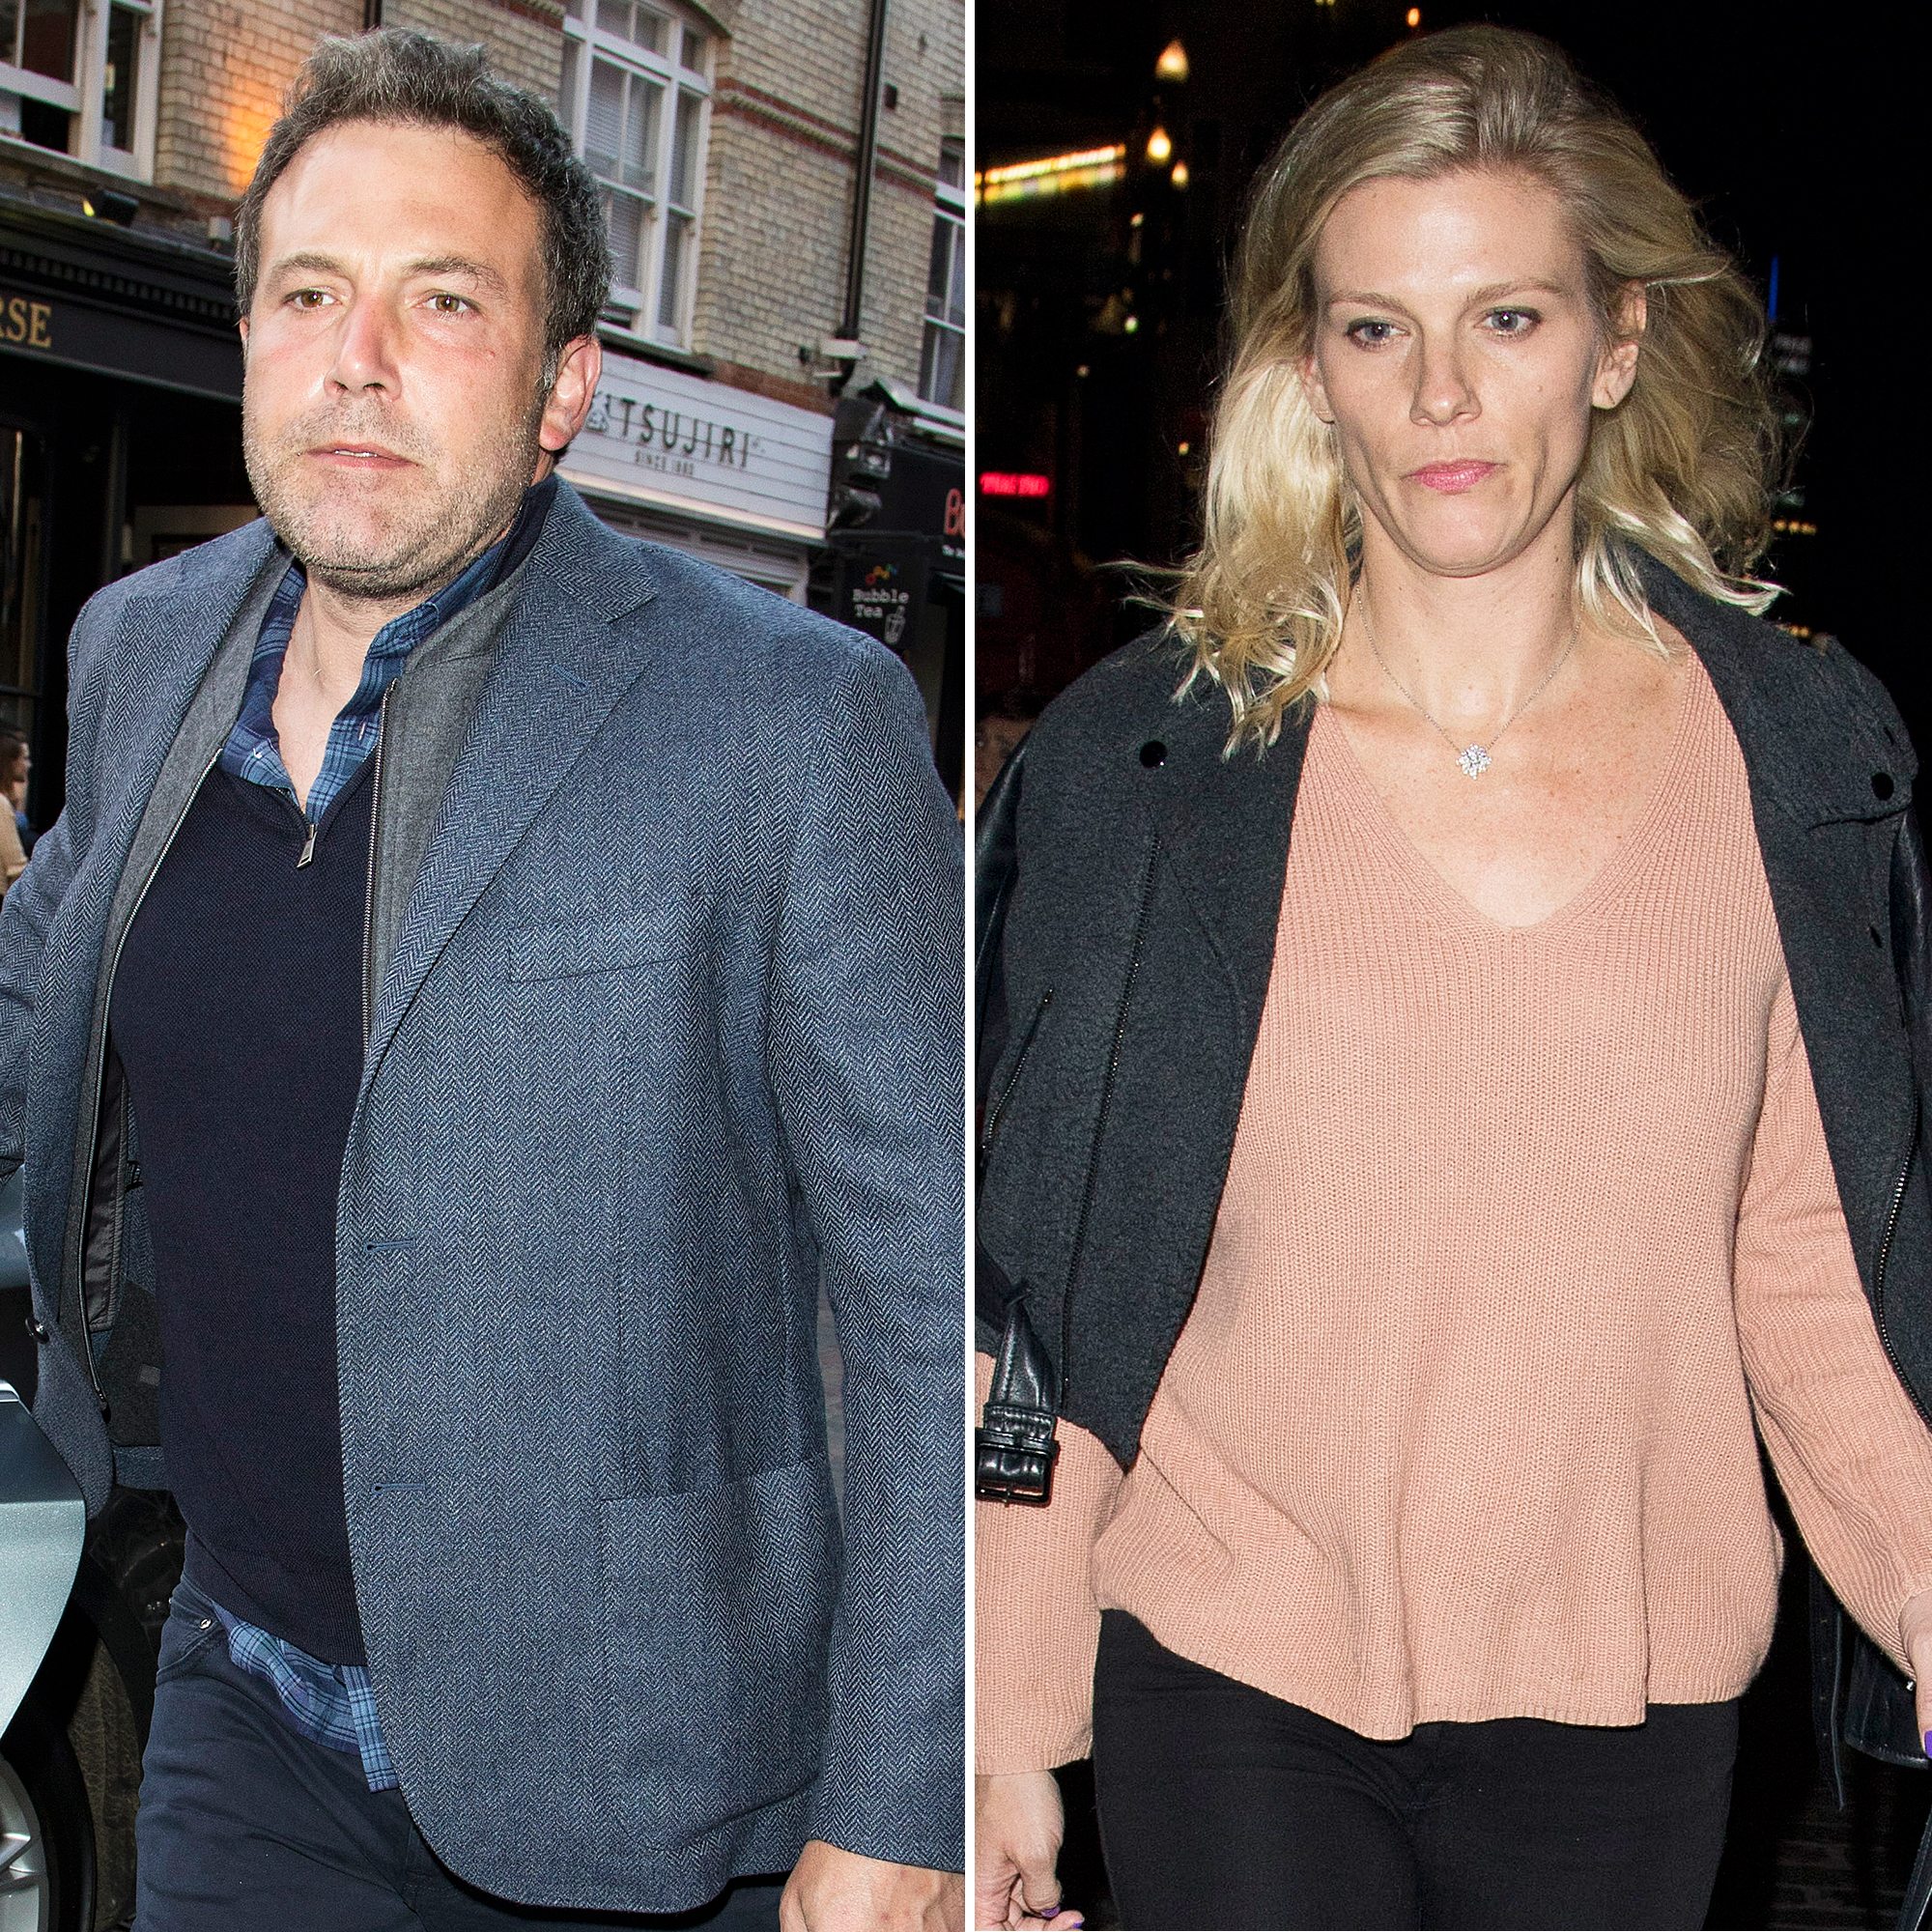 Who is ben affleck dating now